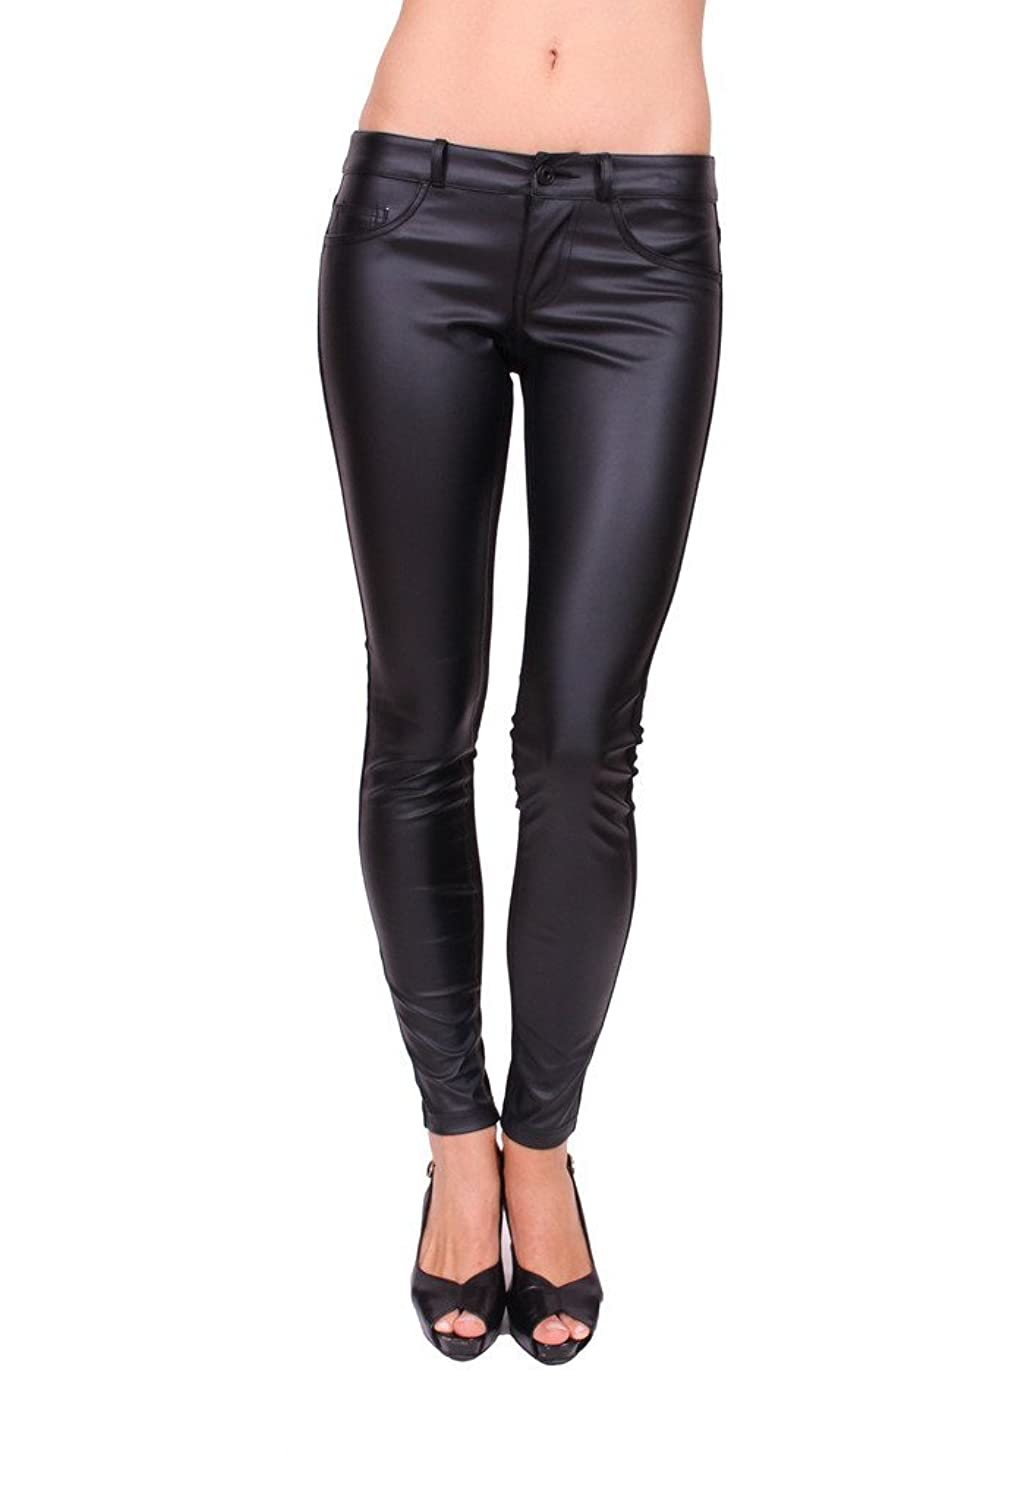 cheap Flying Monkey Jeans Women Black Faux Leather Skinny Ponte ...